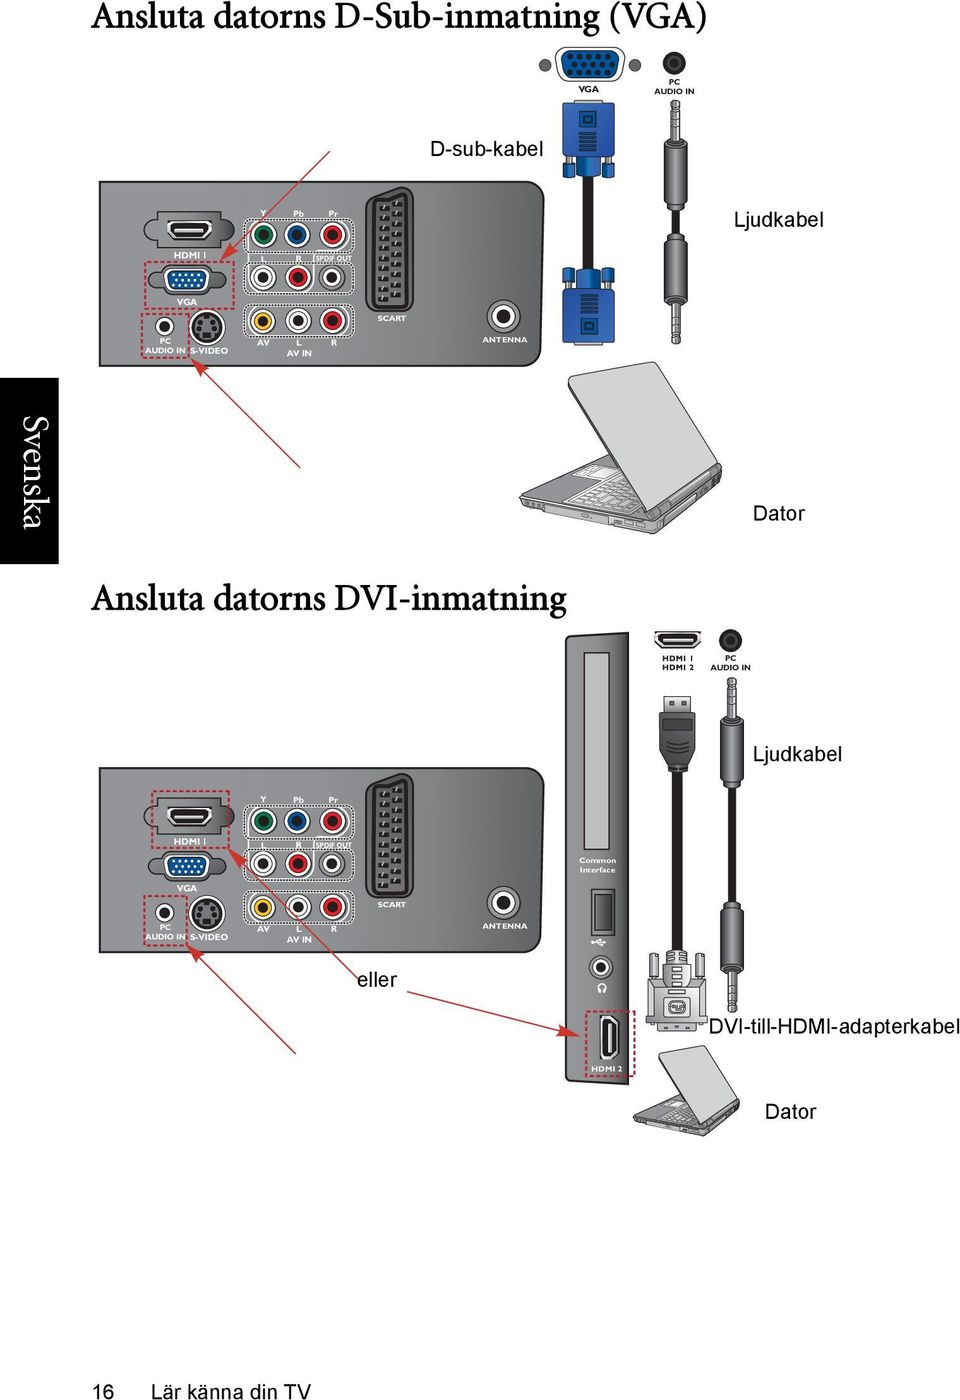 DVI-inmatning PC AUDIO IN Ljudkabel Y Pb Pr HDMI 1 L R SPDIF OUT Common Interface VGA SCART